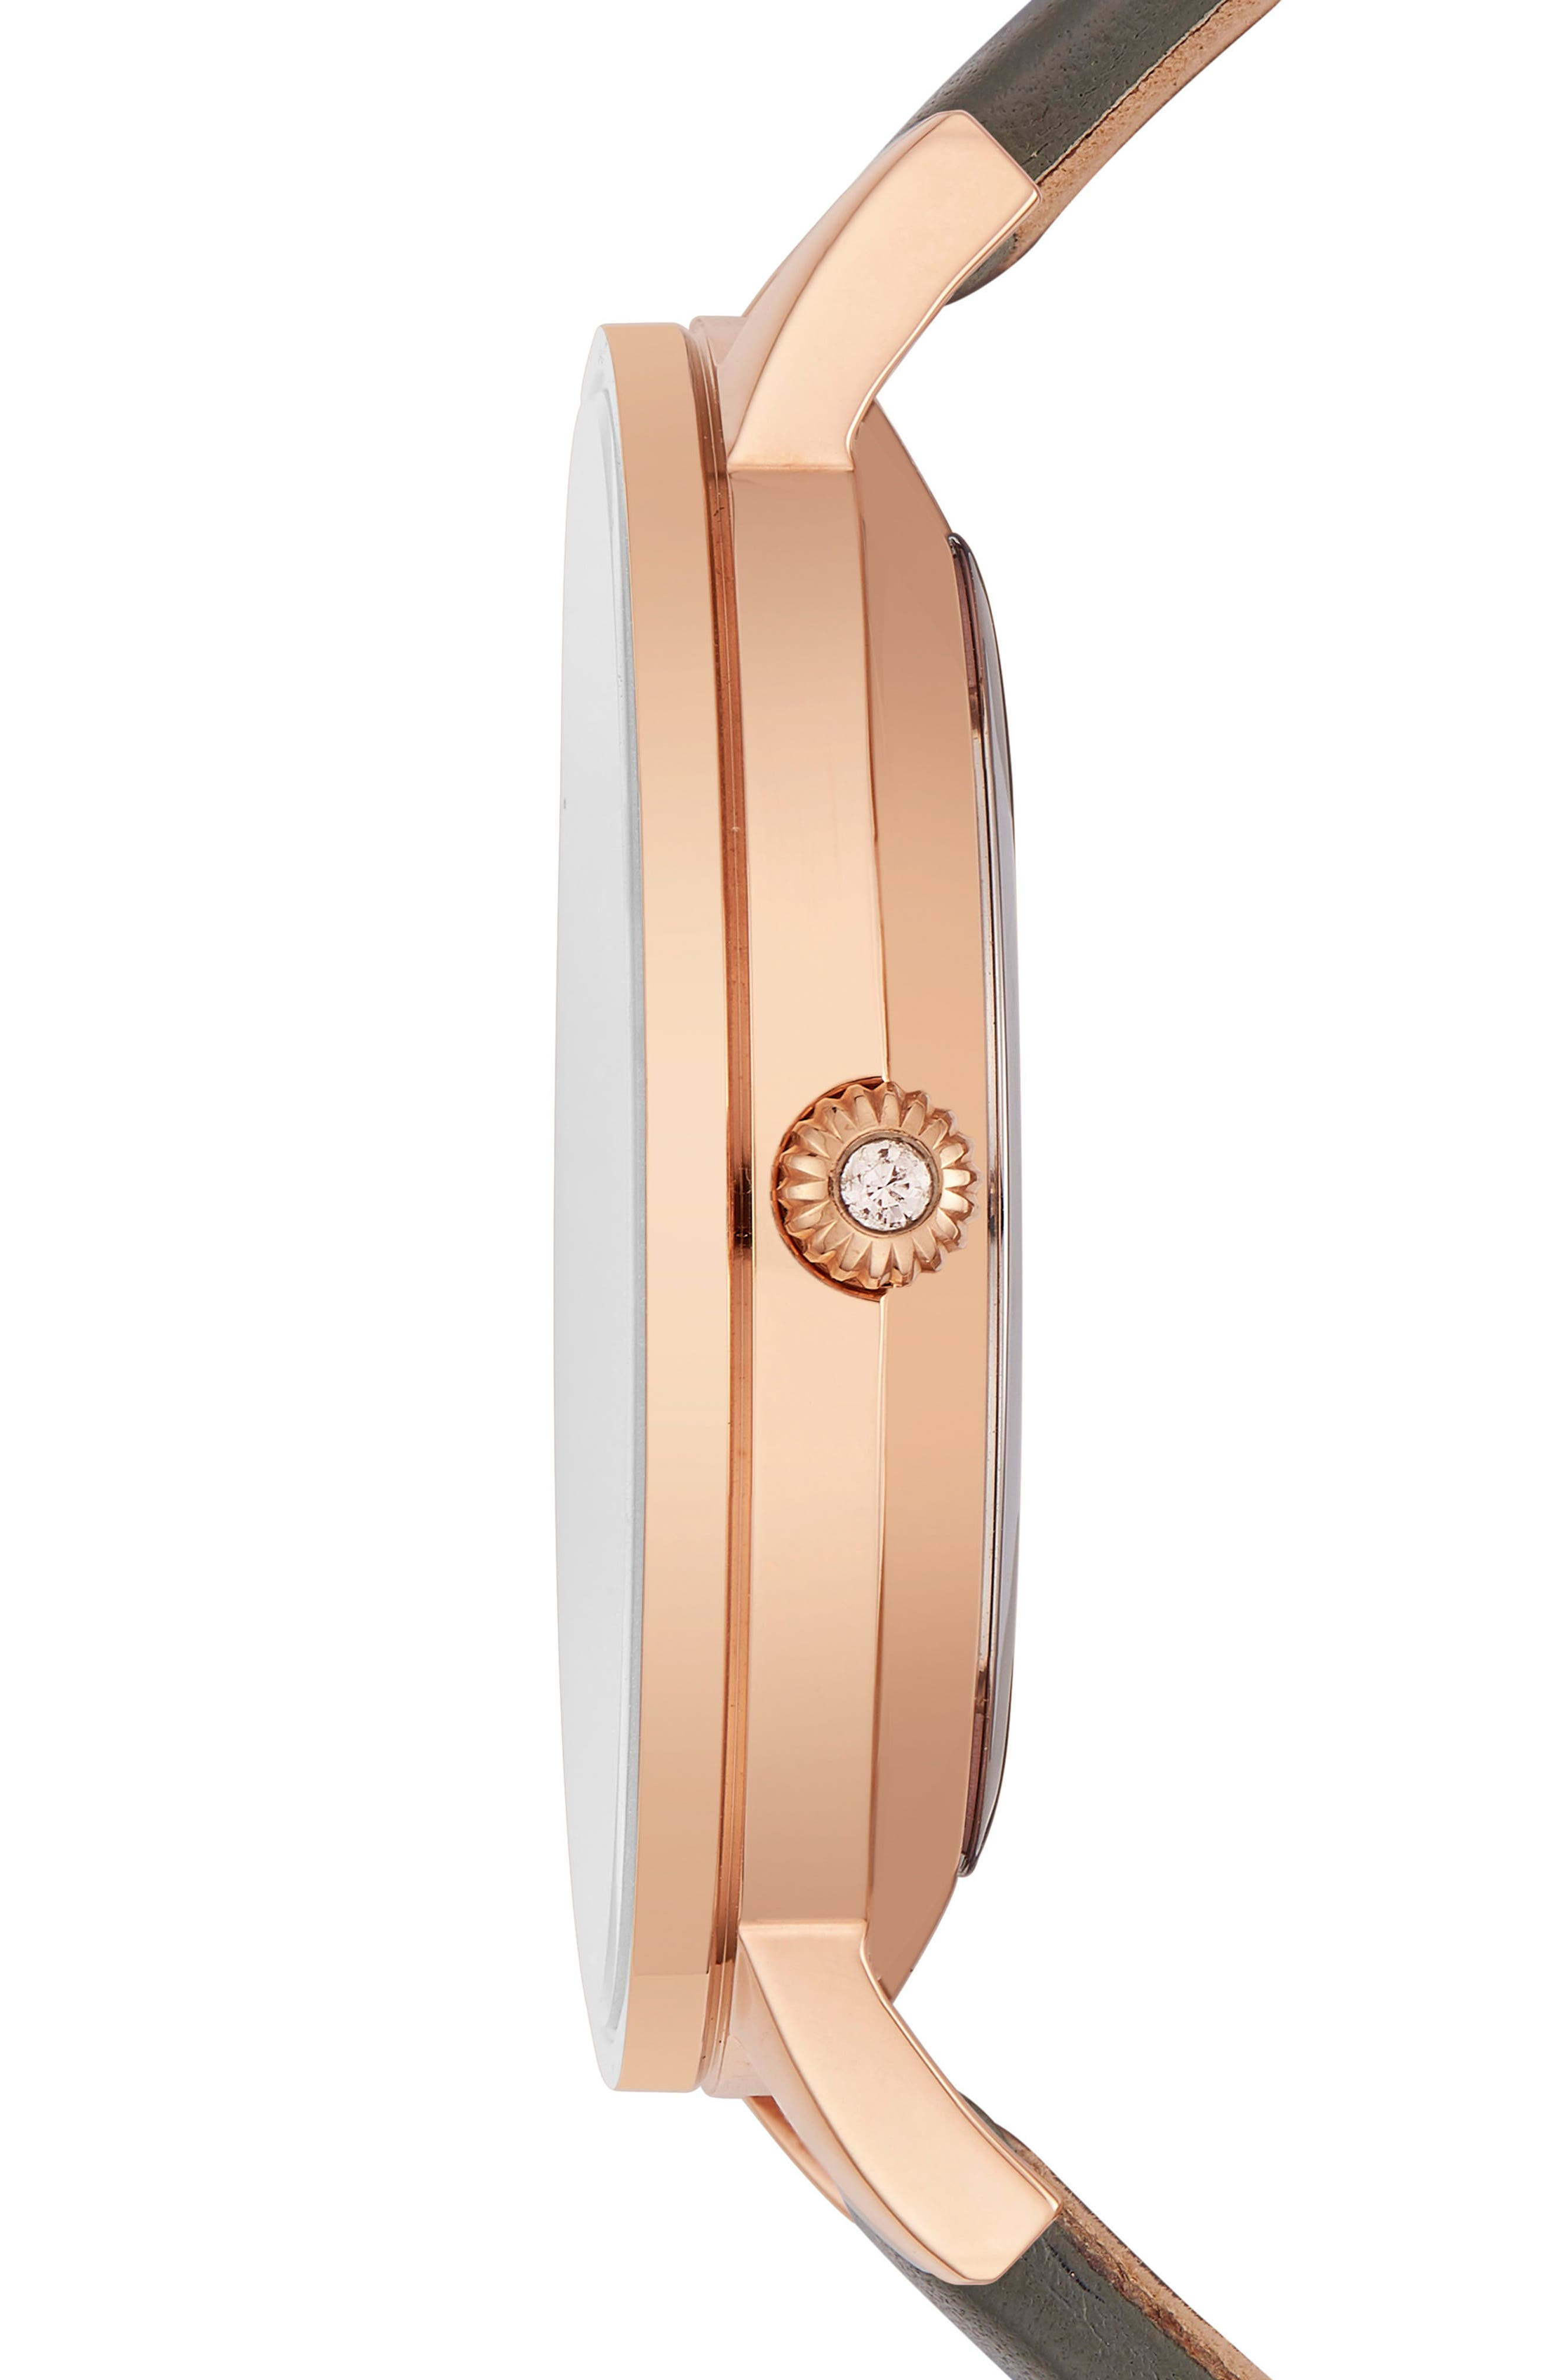 Olivia Leather Strap Watch,                             Alternate thumbnail 3, color,                             Grey/ White/ Rose Gold